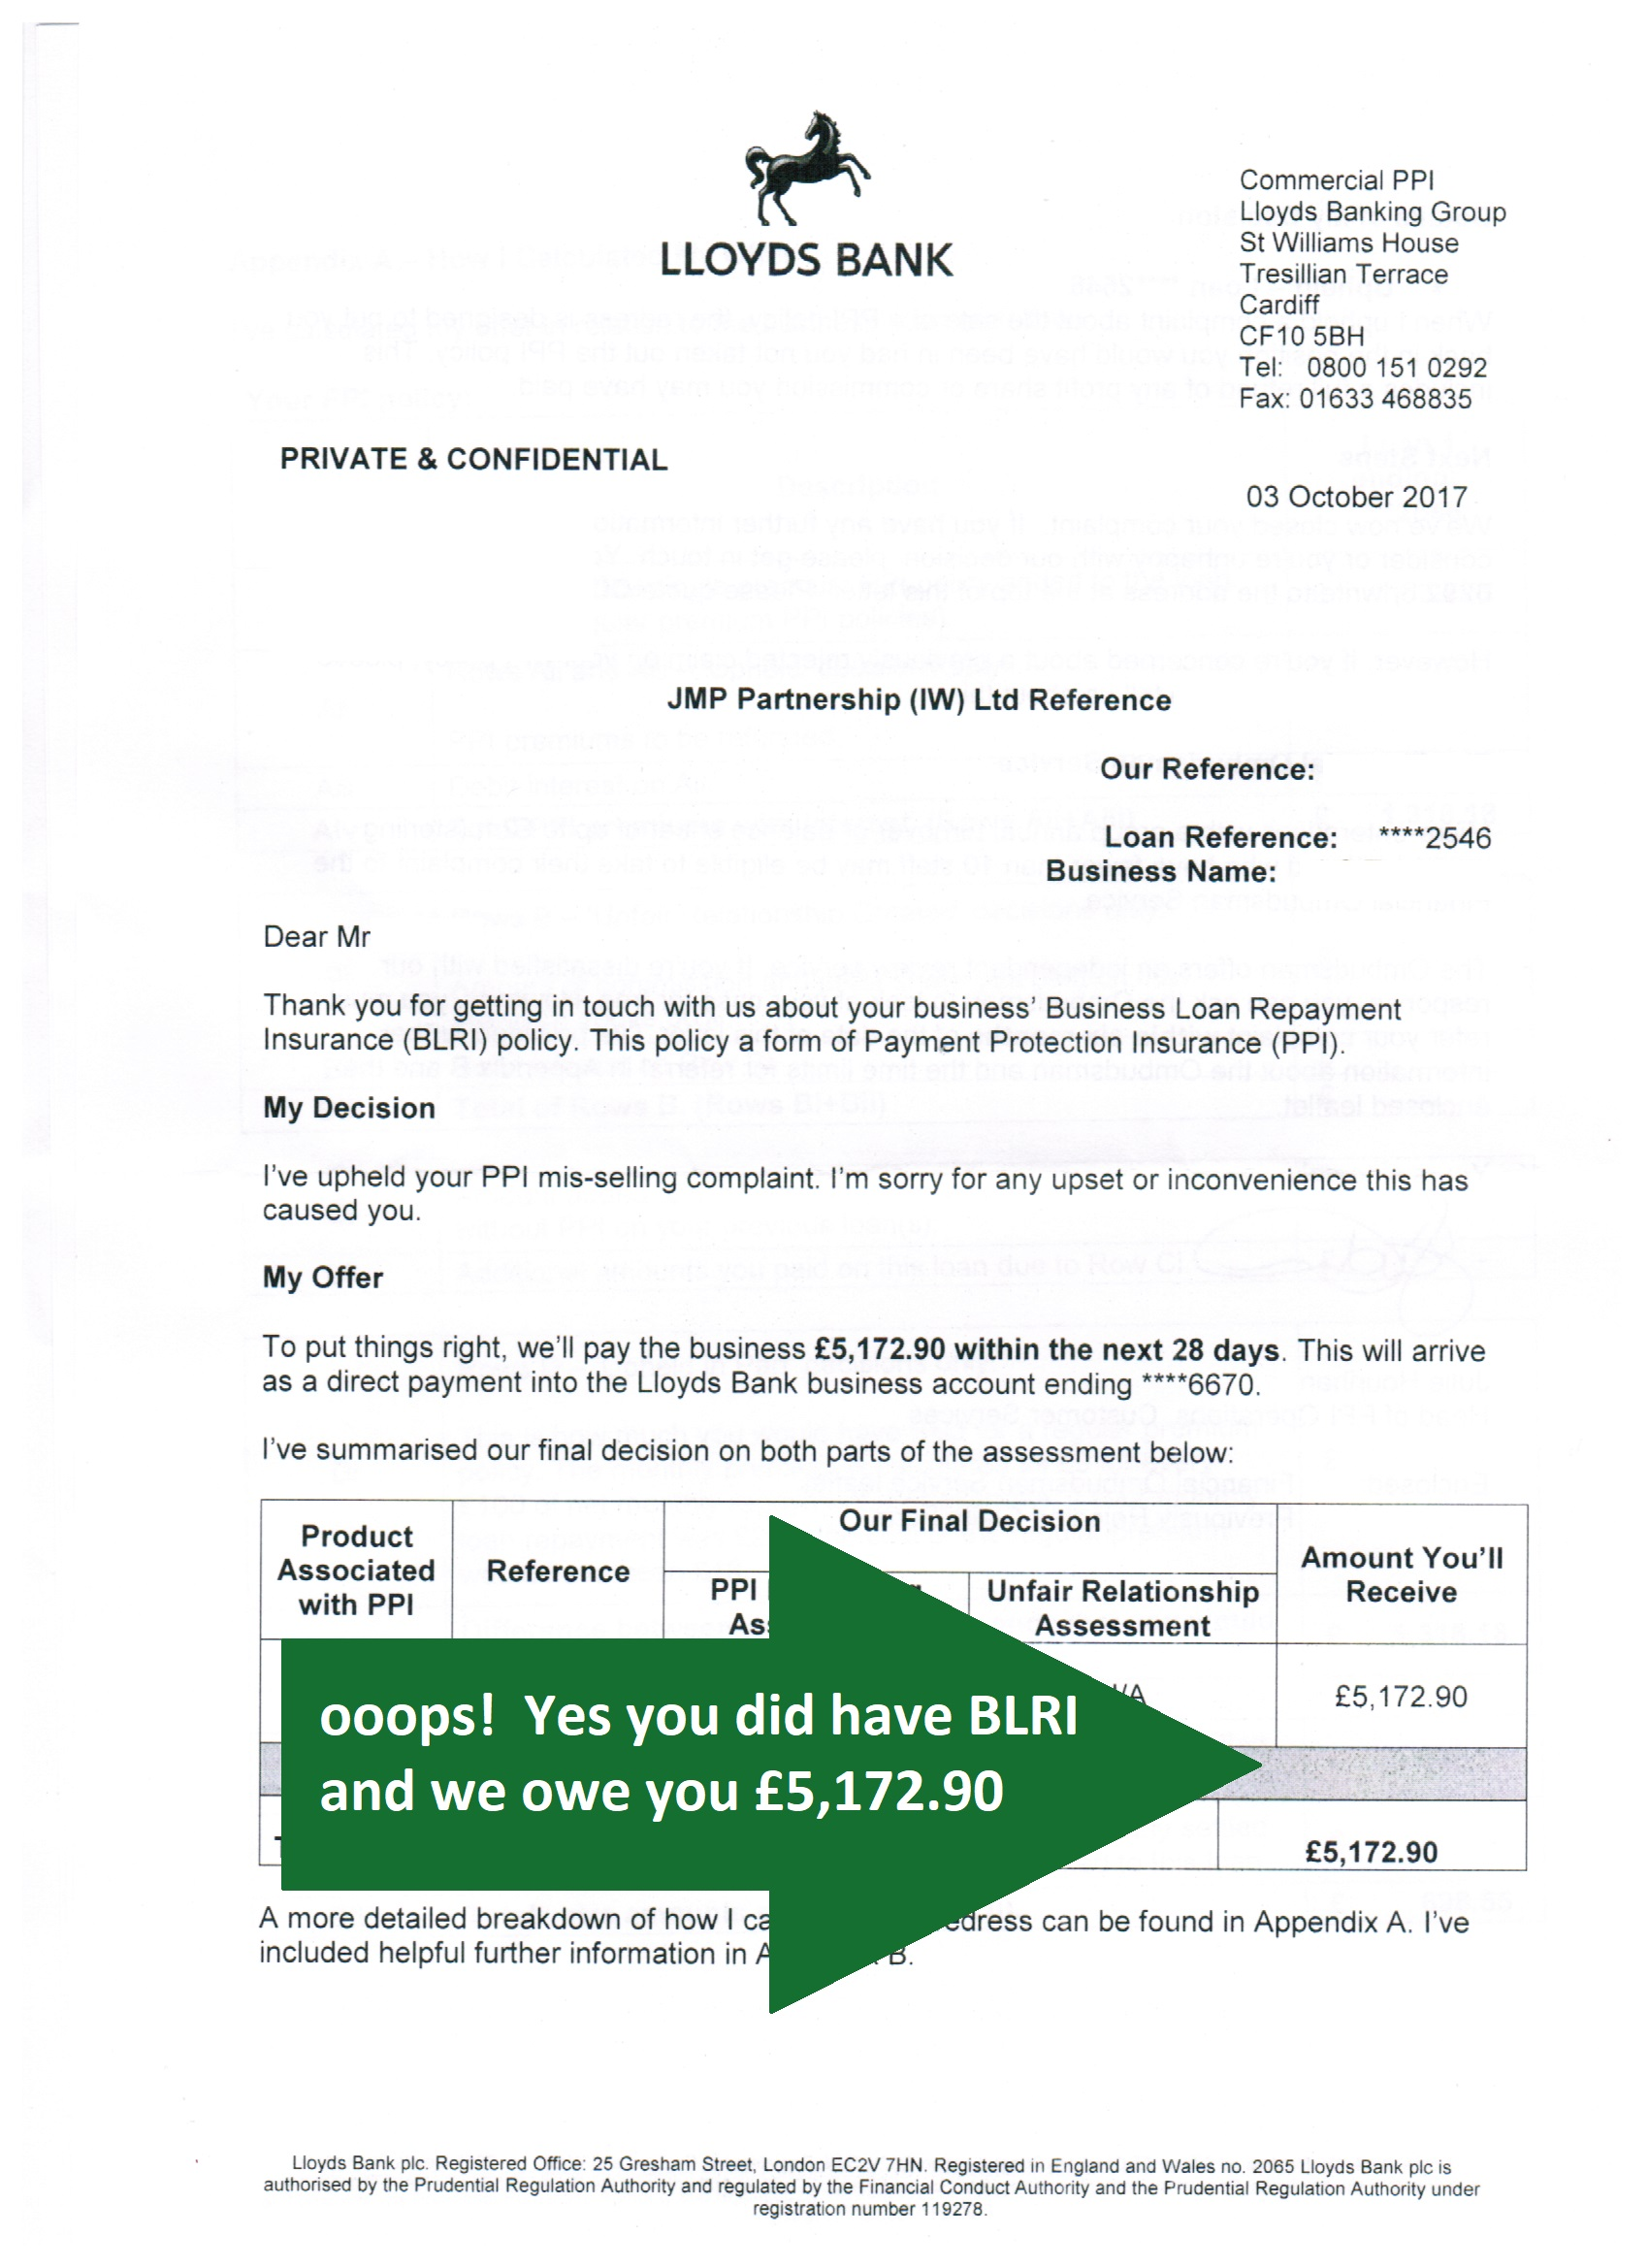 ppi claim template letter to bank - bankers celebrate pocketing billions at the expense of